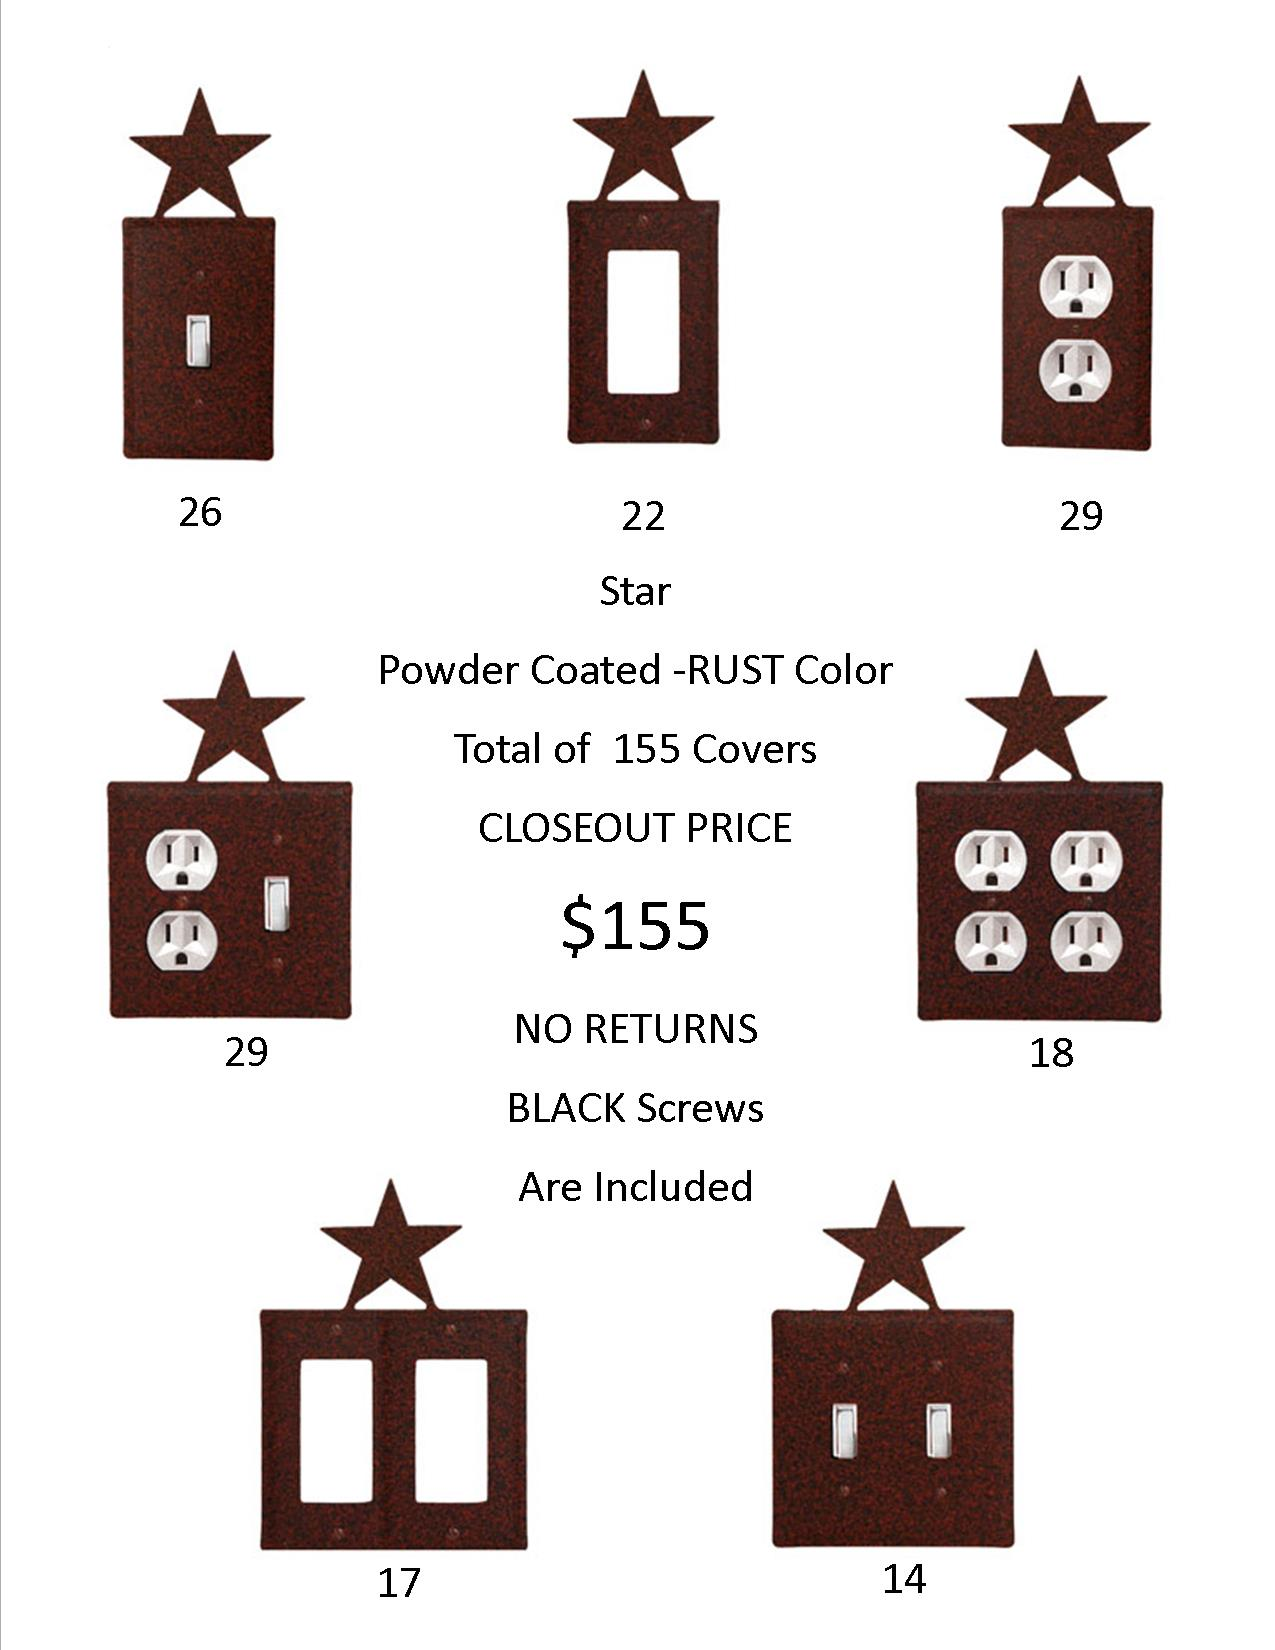 STAR CLOSEOUT - Rust Color ONLY.   155 Covers for only $1 EACH!    Hundreds Of Dollars Worth of SAVINGS and that's just on the Wholesale Price! Jut think of the PROFIT on the Retail Sales.